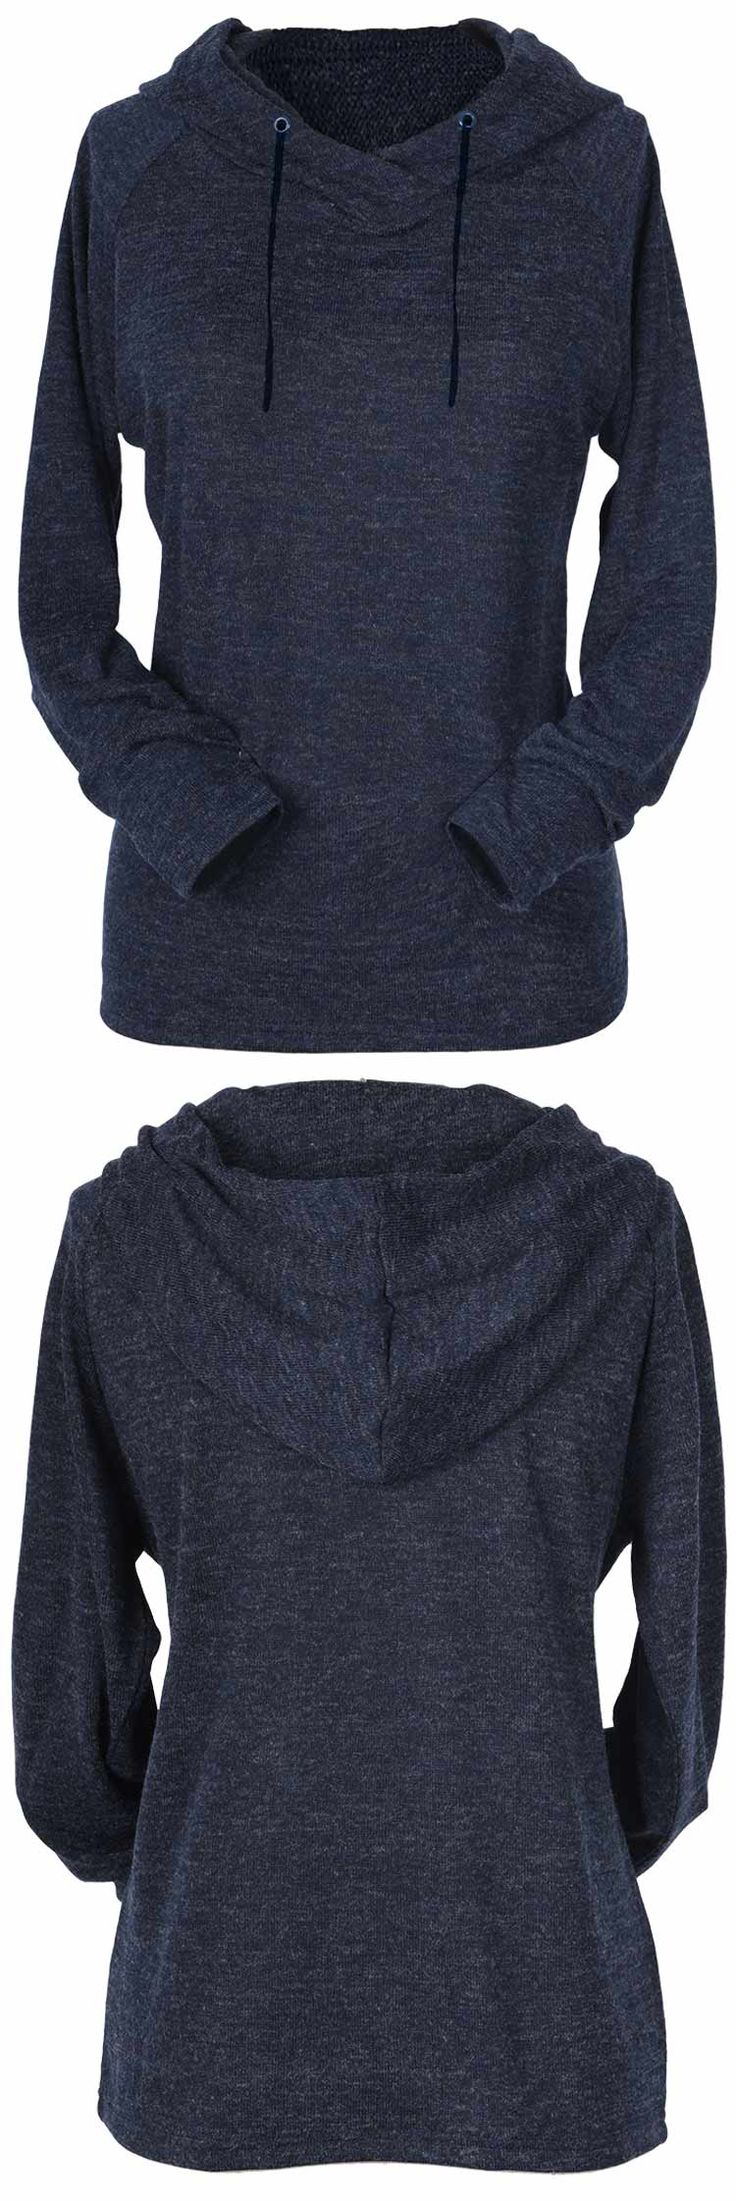 $21.99 Only with free shipping! You won't mind being put on the spot in this top. This solid color hoodie will be your fave this fall/winter! Search more at Cupshe.com